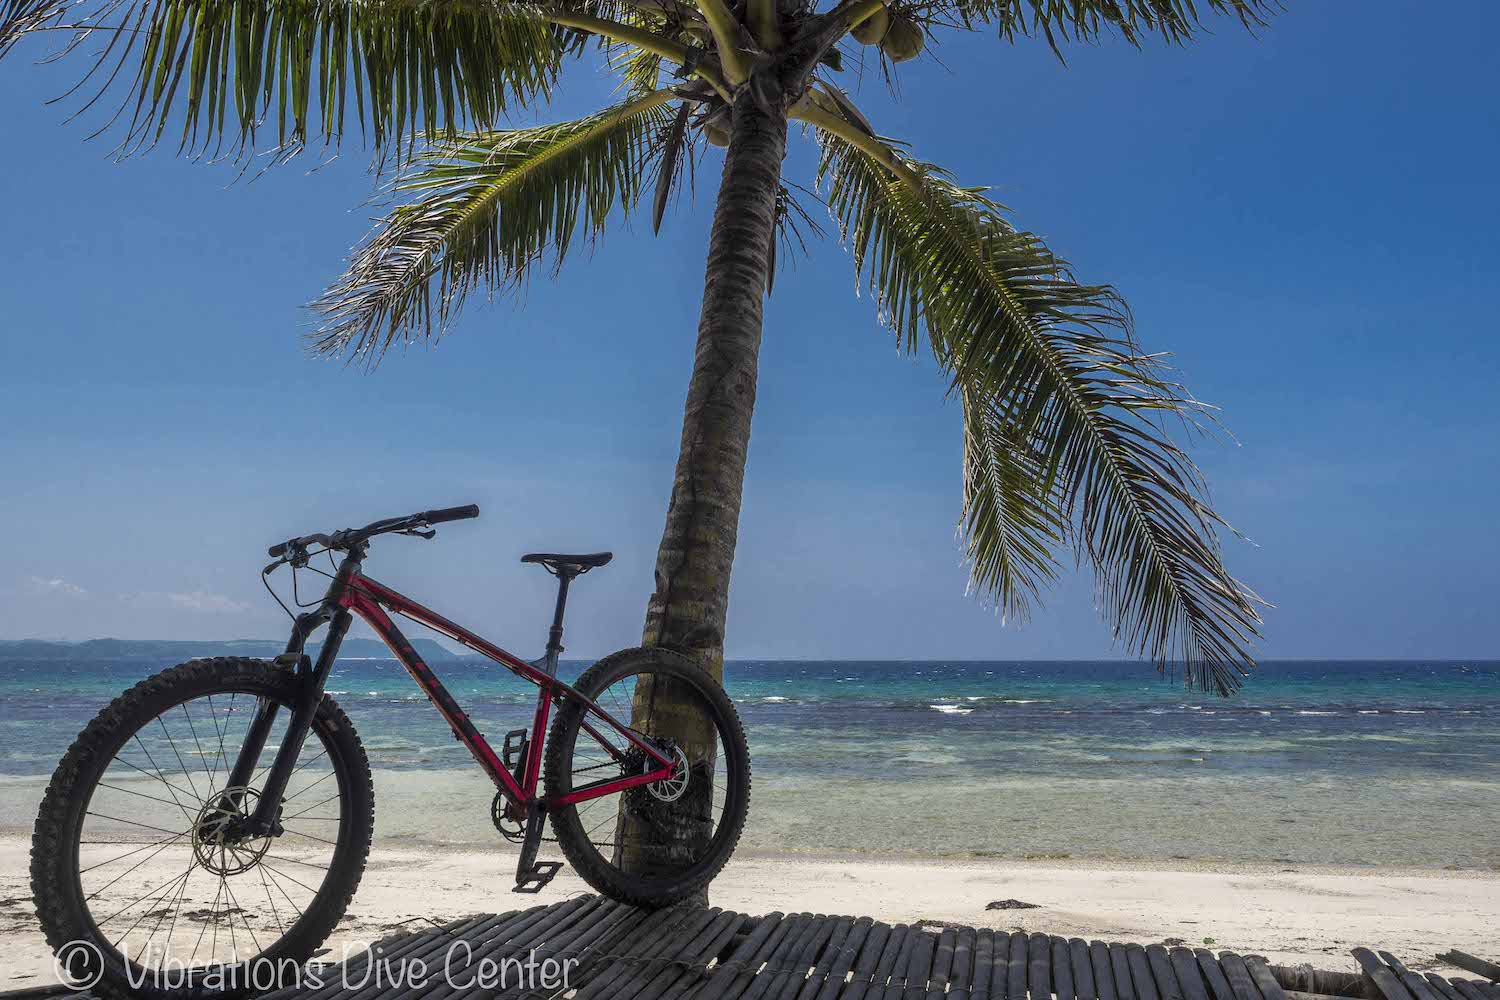 Mountain Bike on a white sand beach on Carabao Island. Informations activities and things to do on Carabao.